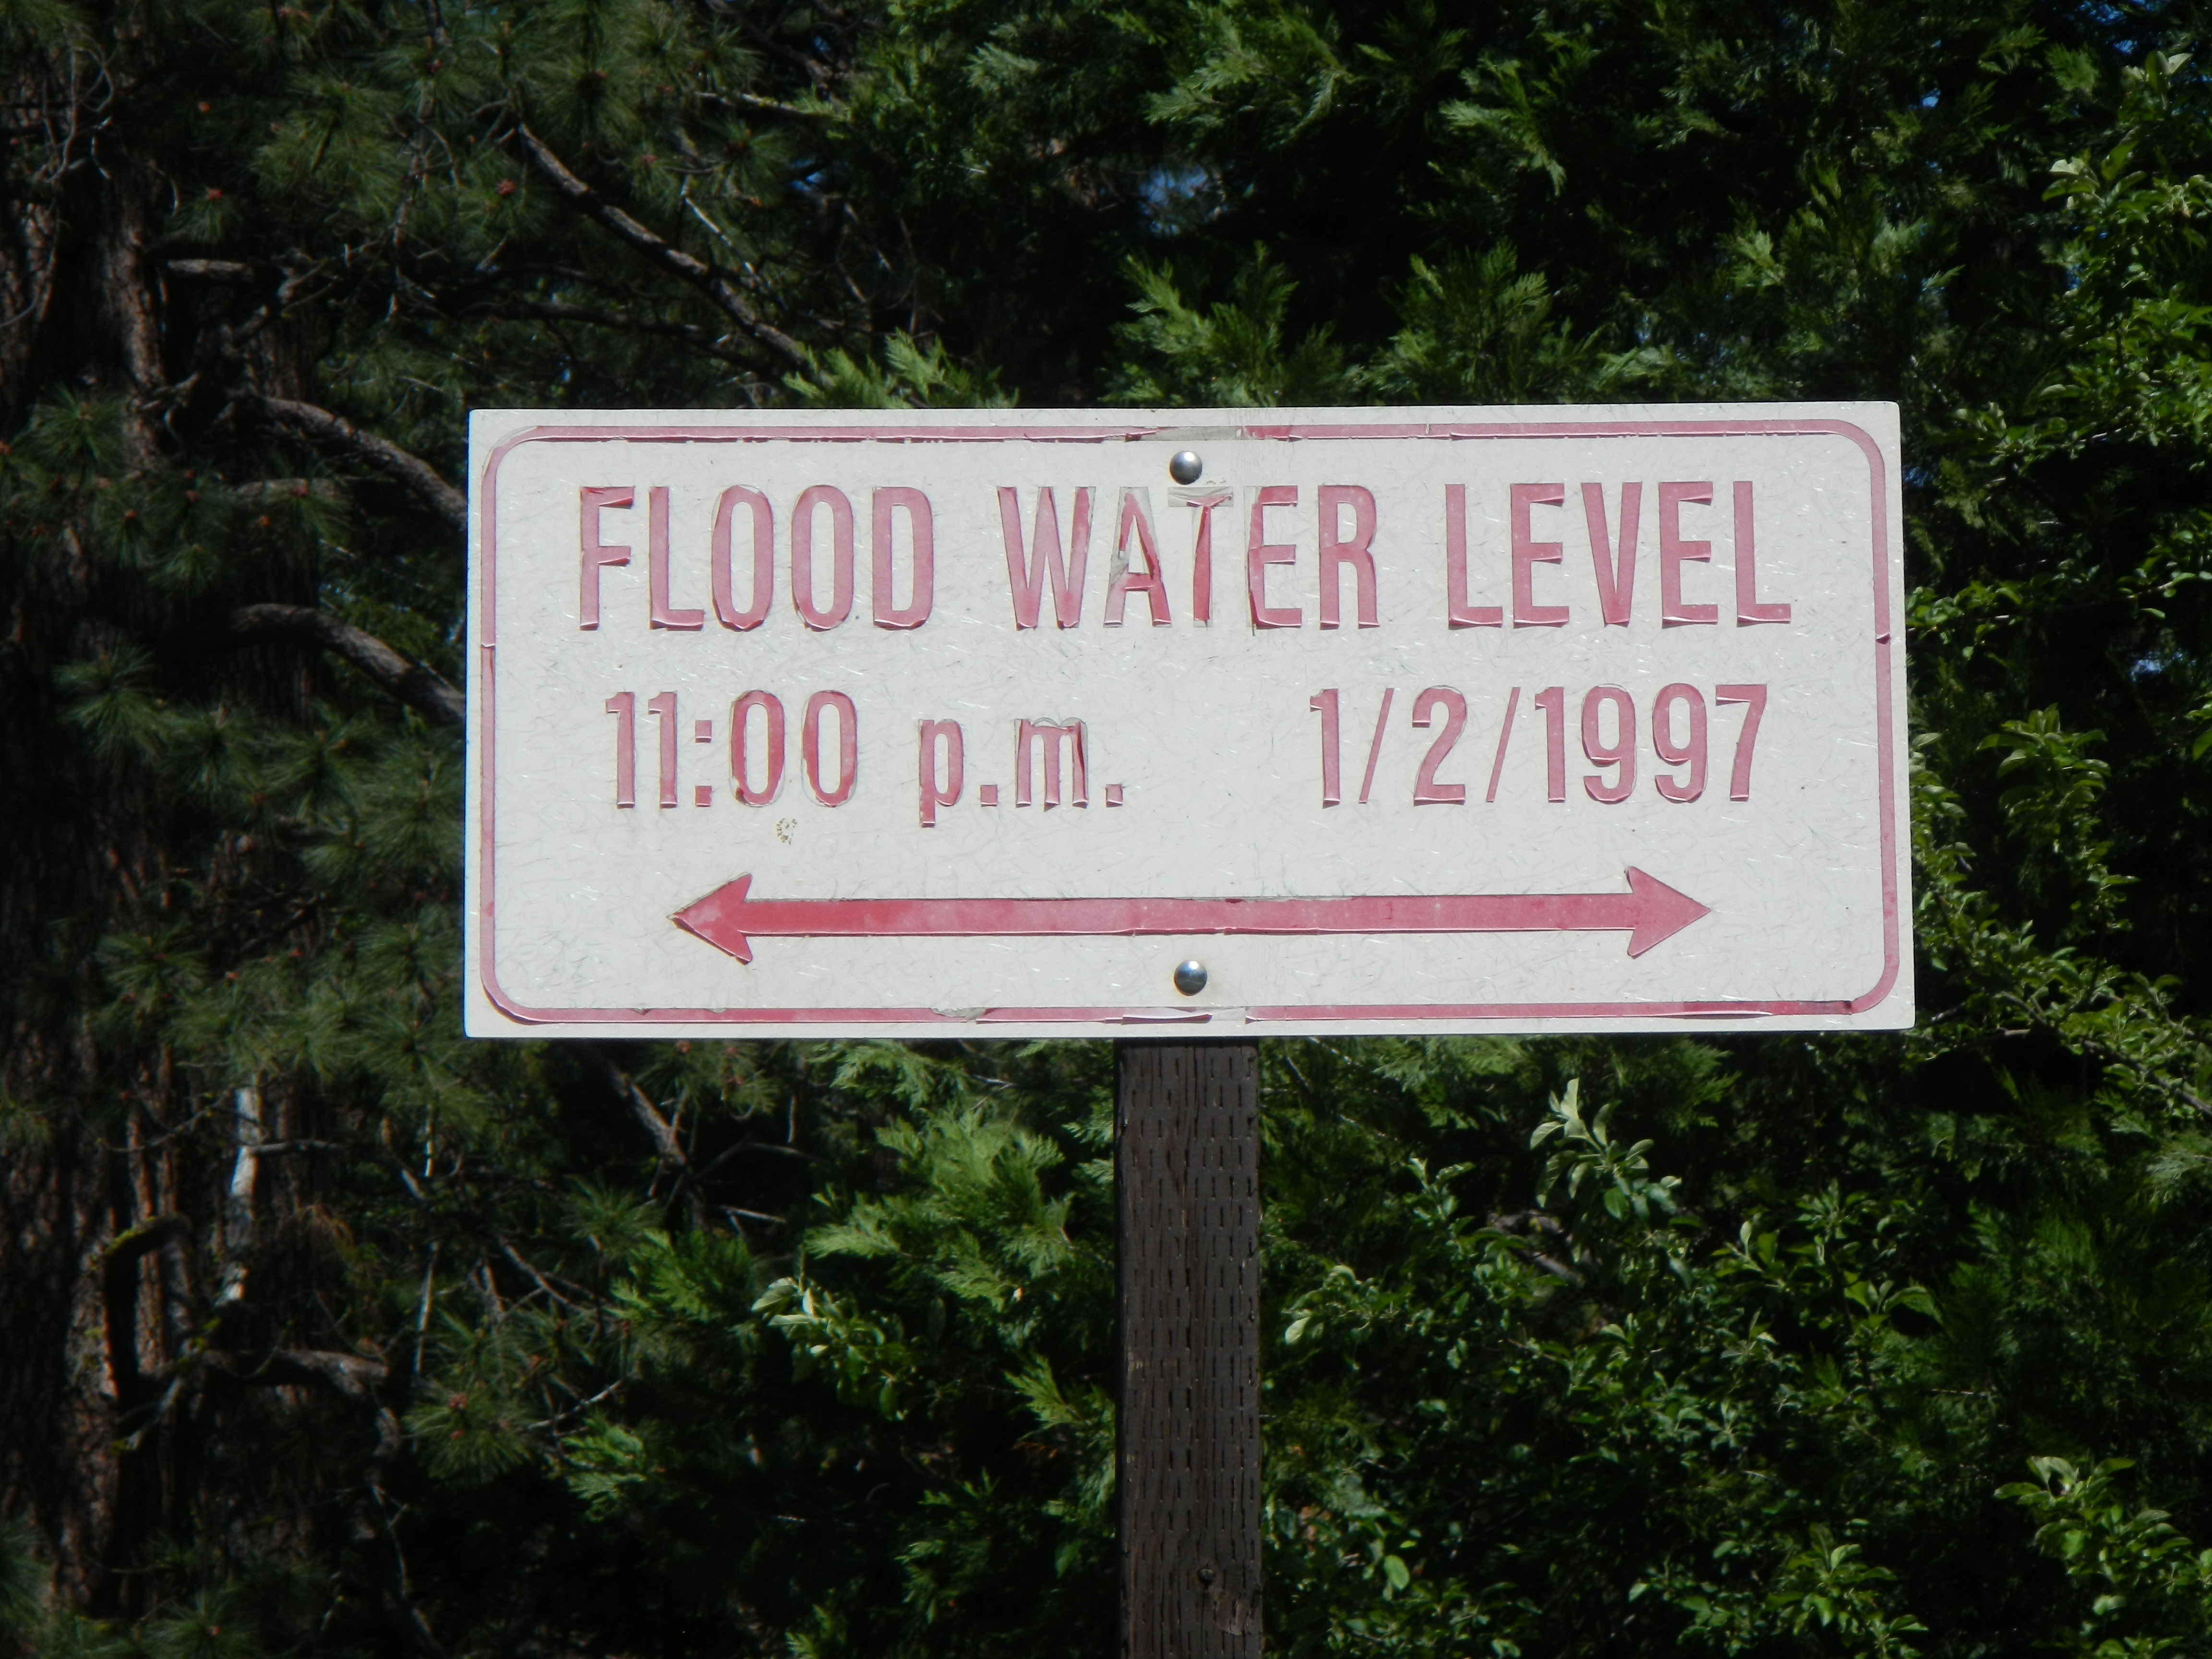 Nearby Flood Level marker